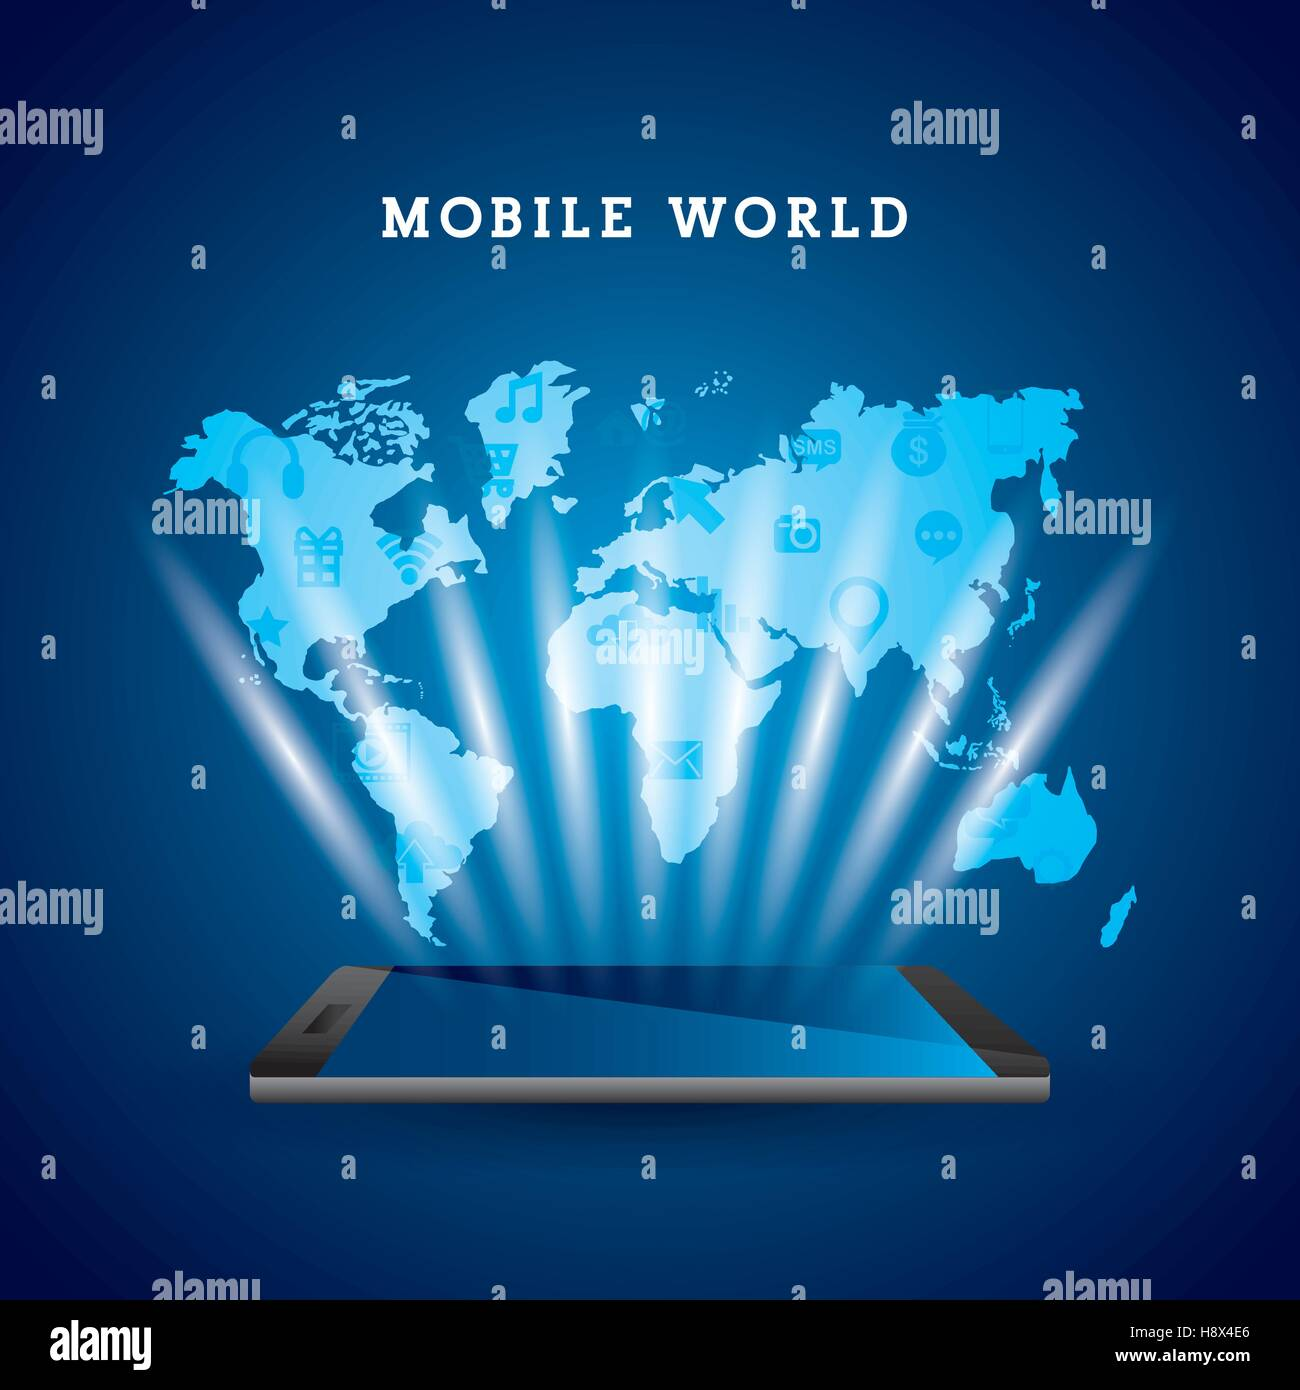 Smartphone devie with world map over blue background mobile world smartphone devie with world map over blue background mobile world design vector illustration gumiabroncs Images